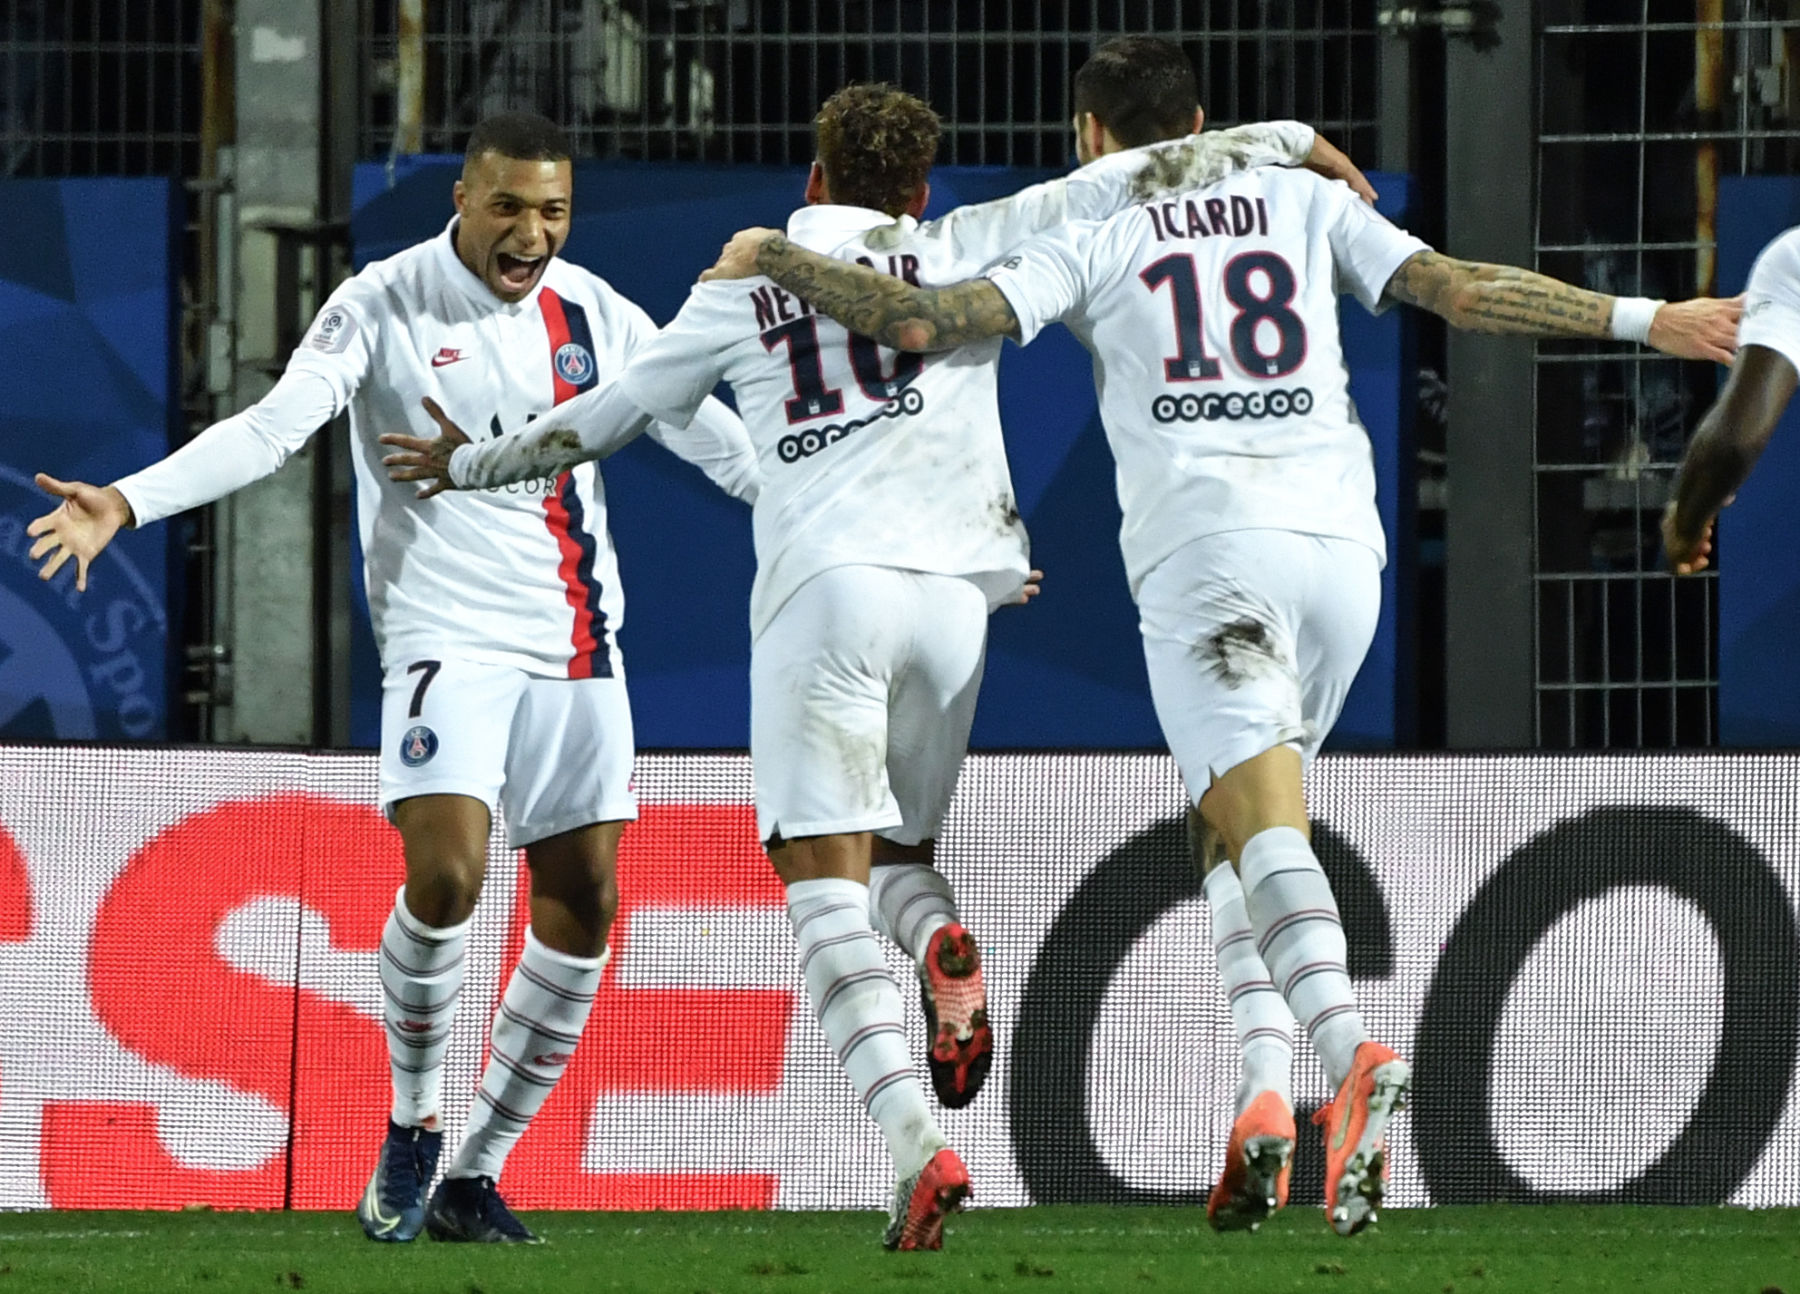 montpellier-psg - photo #3